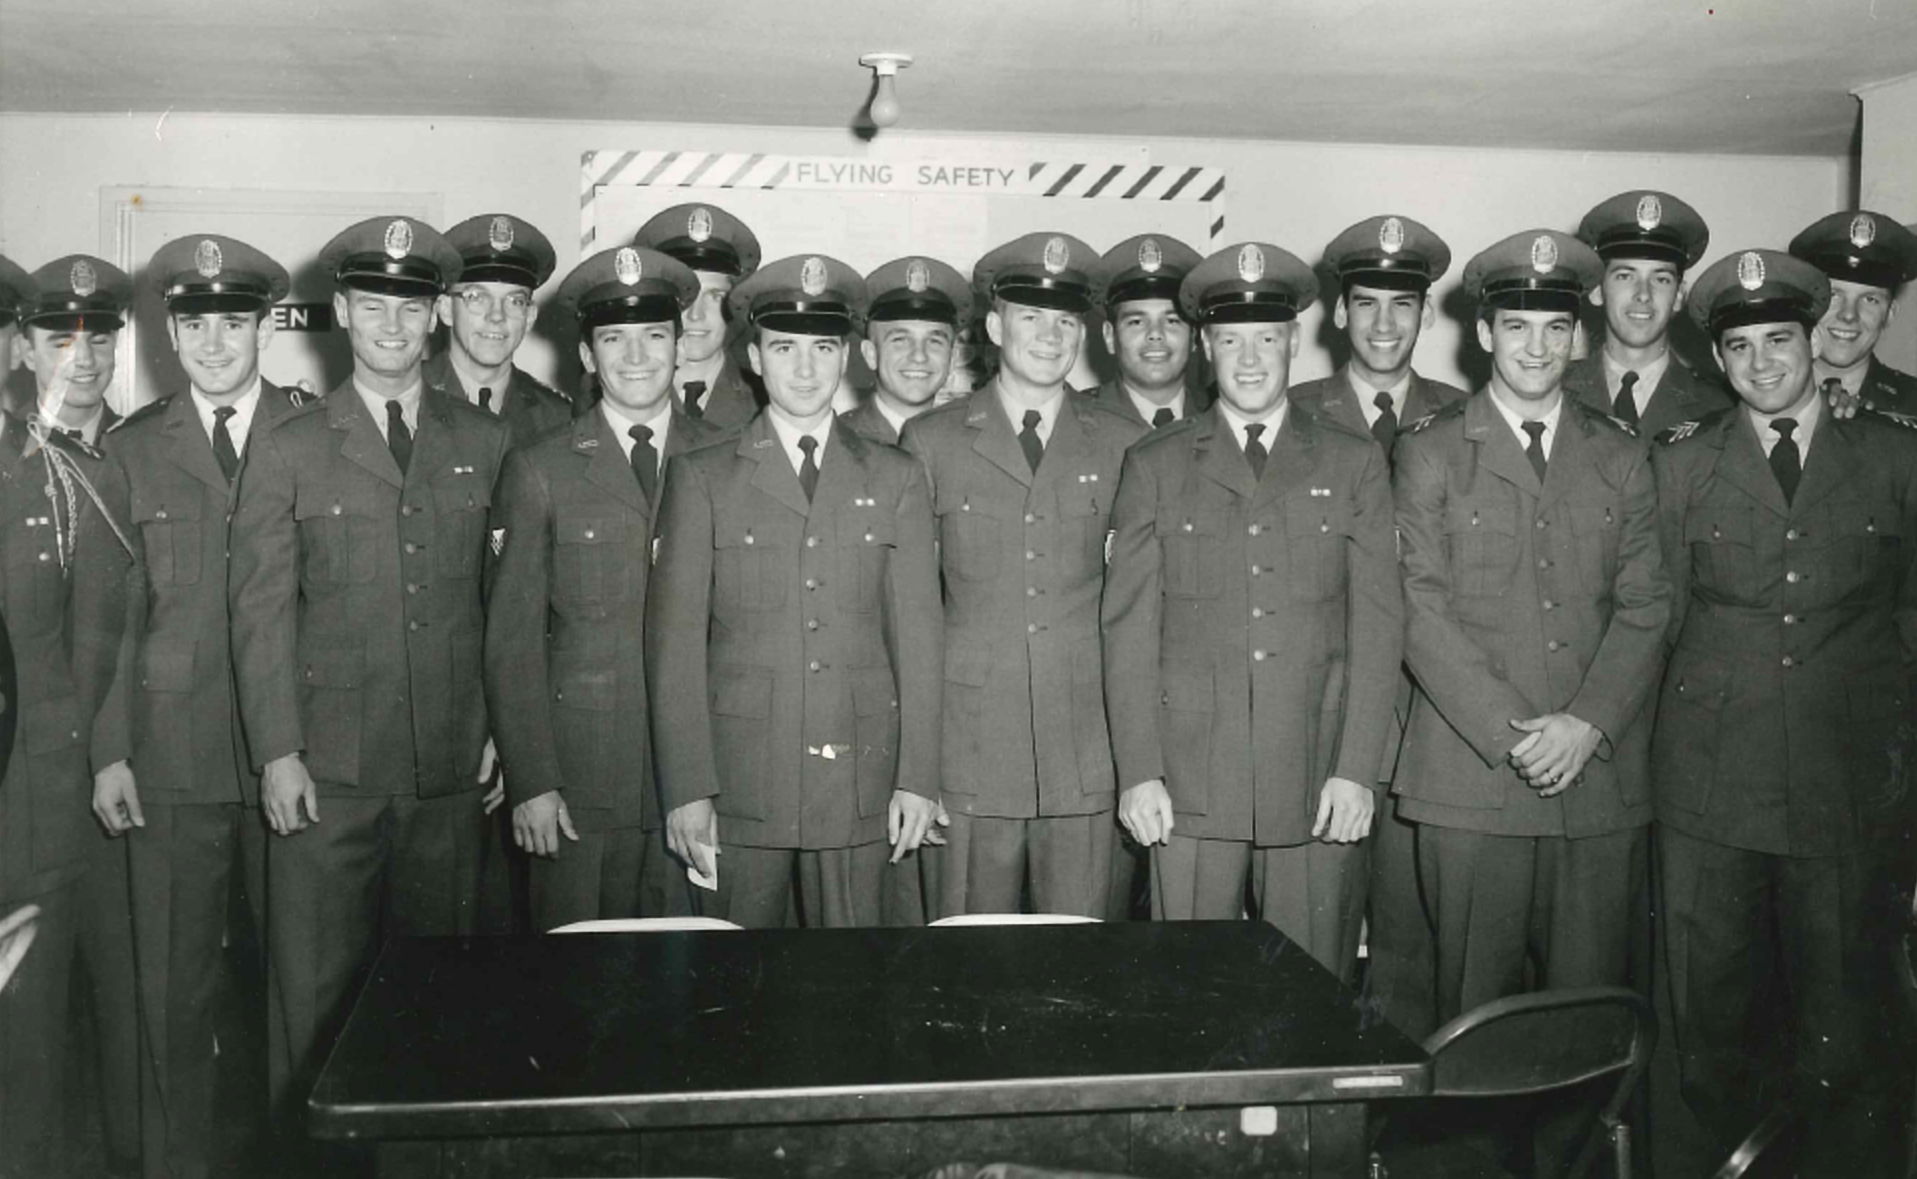 people in uniform posing for a picture